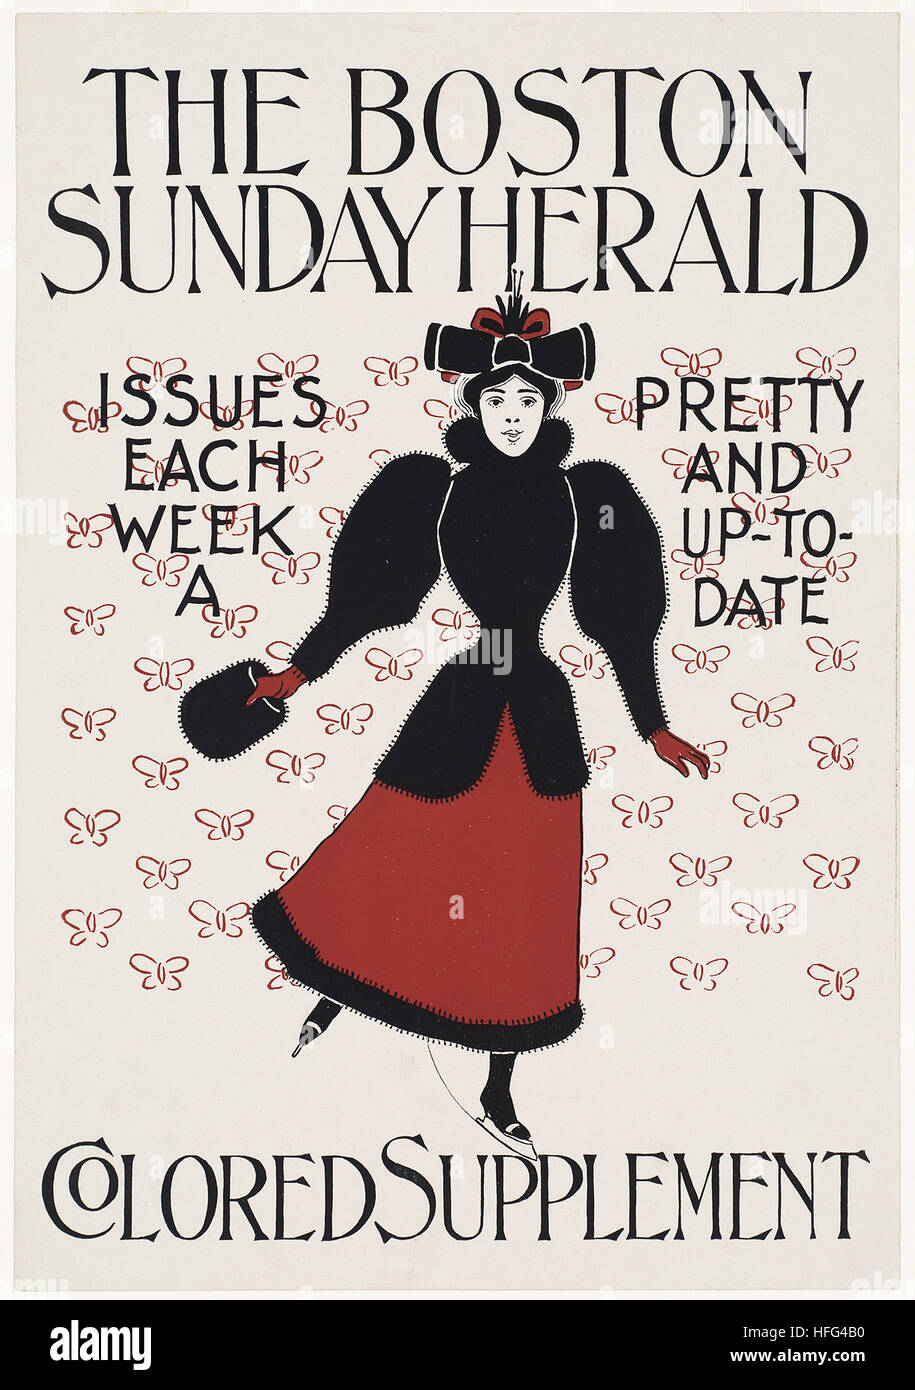 The Boston Sunday herald colored supplement - Stock Image